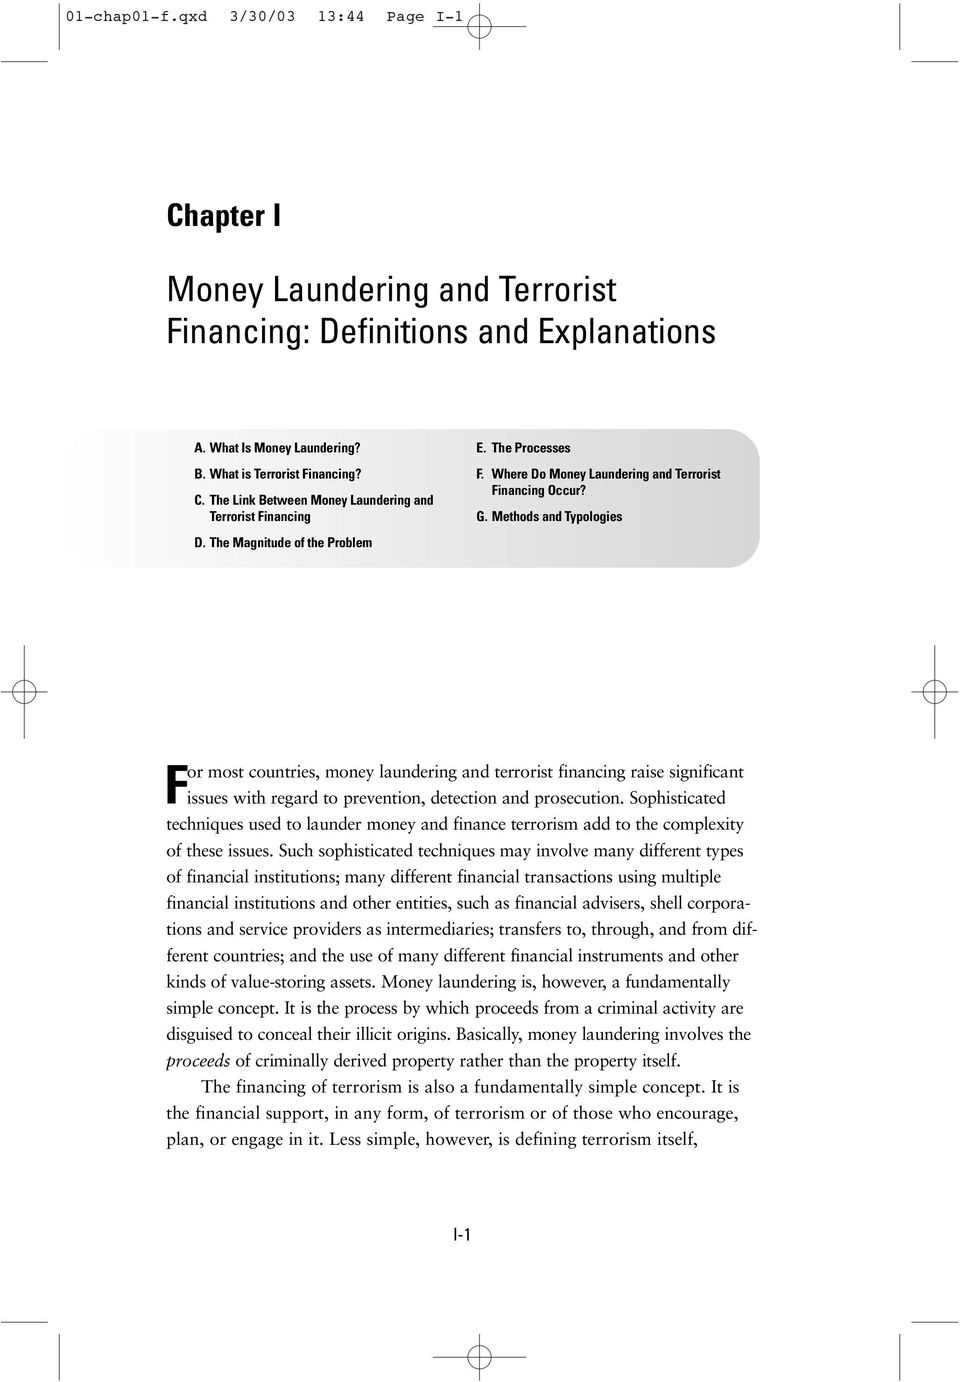 Methods and Typologies For most countries, money laundering and terrorist financing raise significant issues with regard to prevention, detection and prosecution.